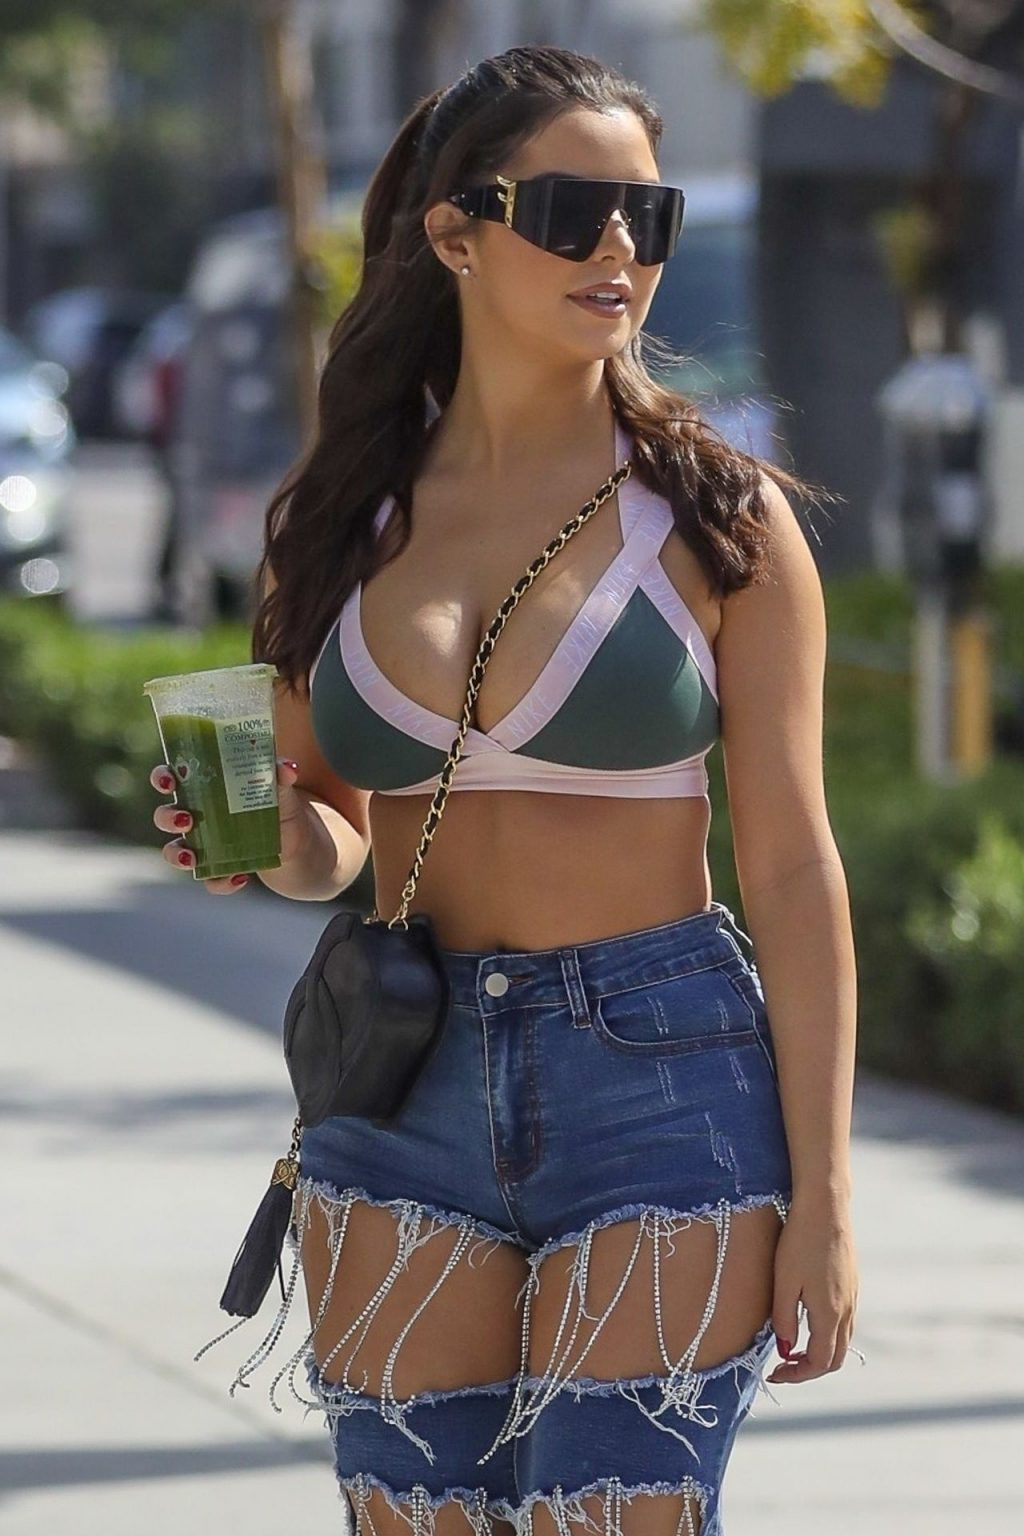 Demi Rose Visits the PrettyLittleThing Showroom on Melrose in Los Angeles (92 Photos)